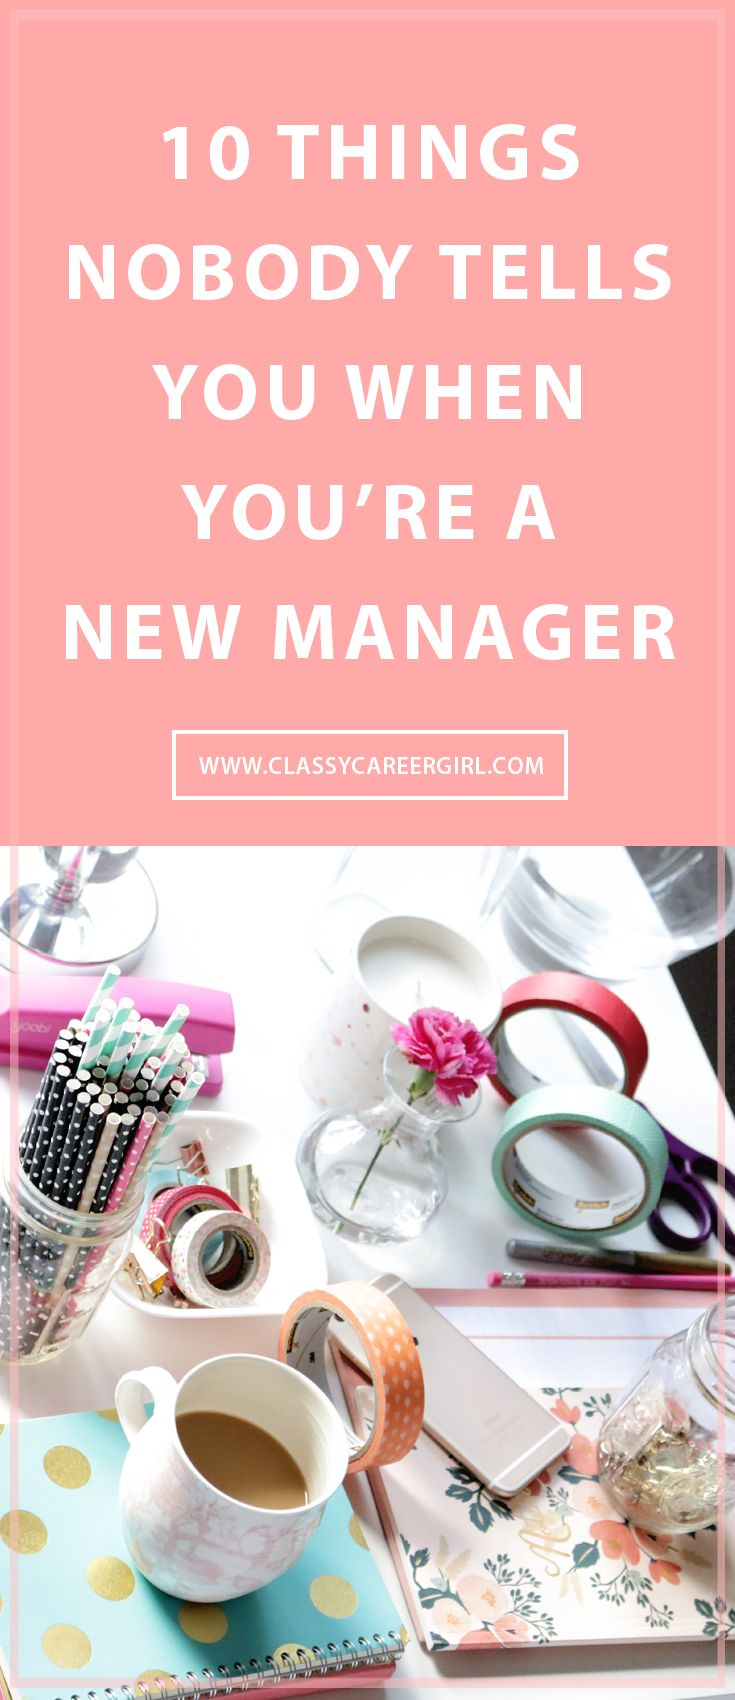 best manager quotes leadership leadership 10 things nobody tells you when you re a new manager